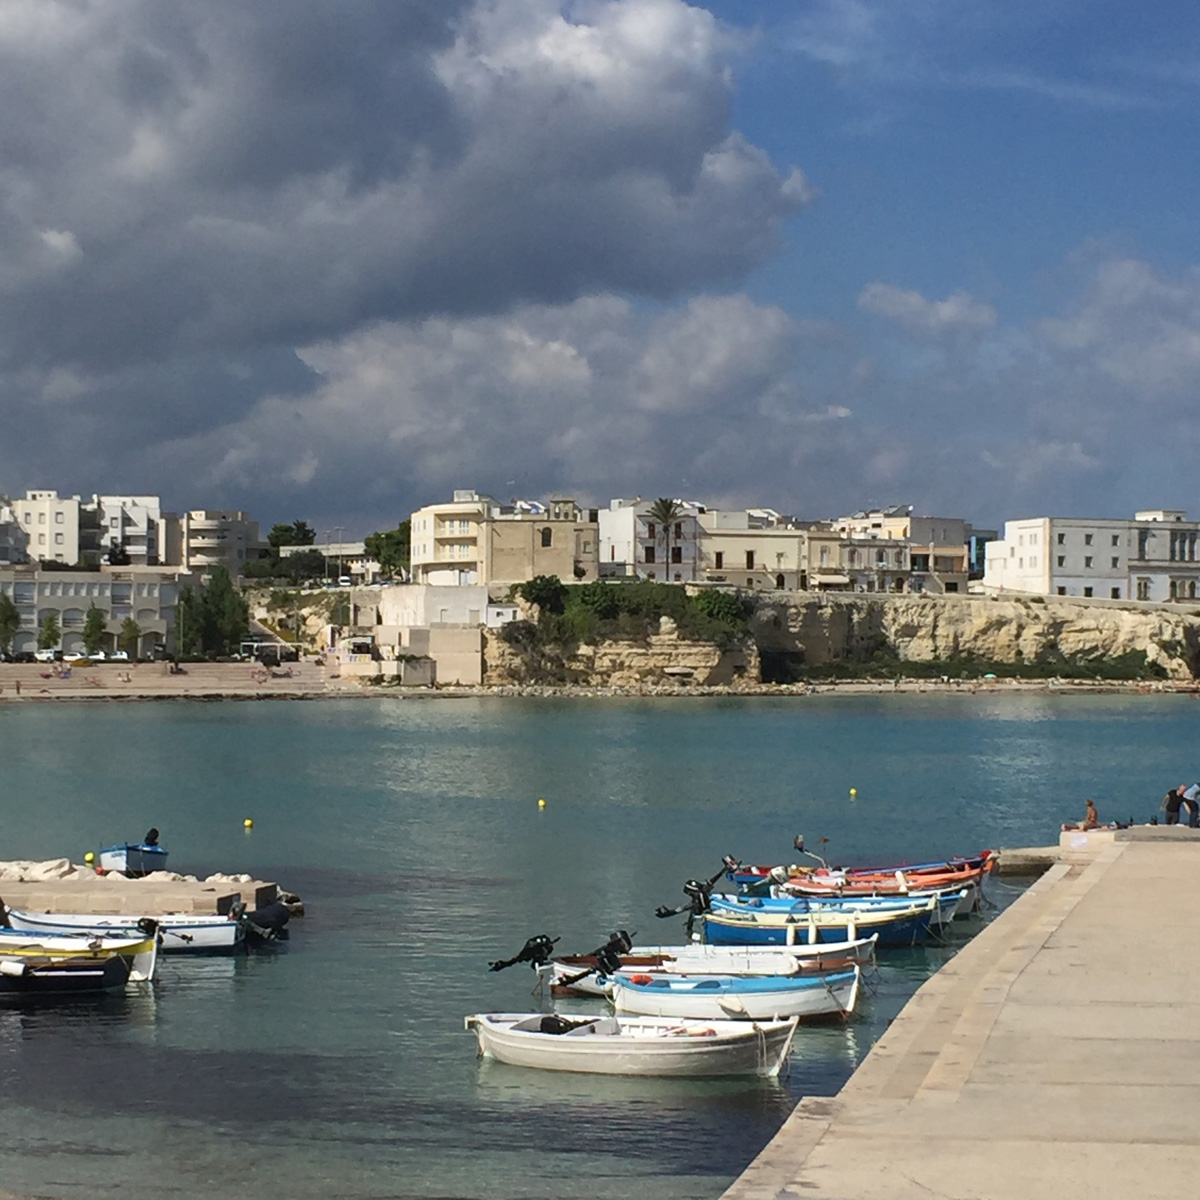 The Seaside Town of Otranto in the Salento